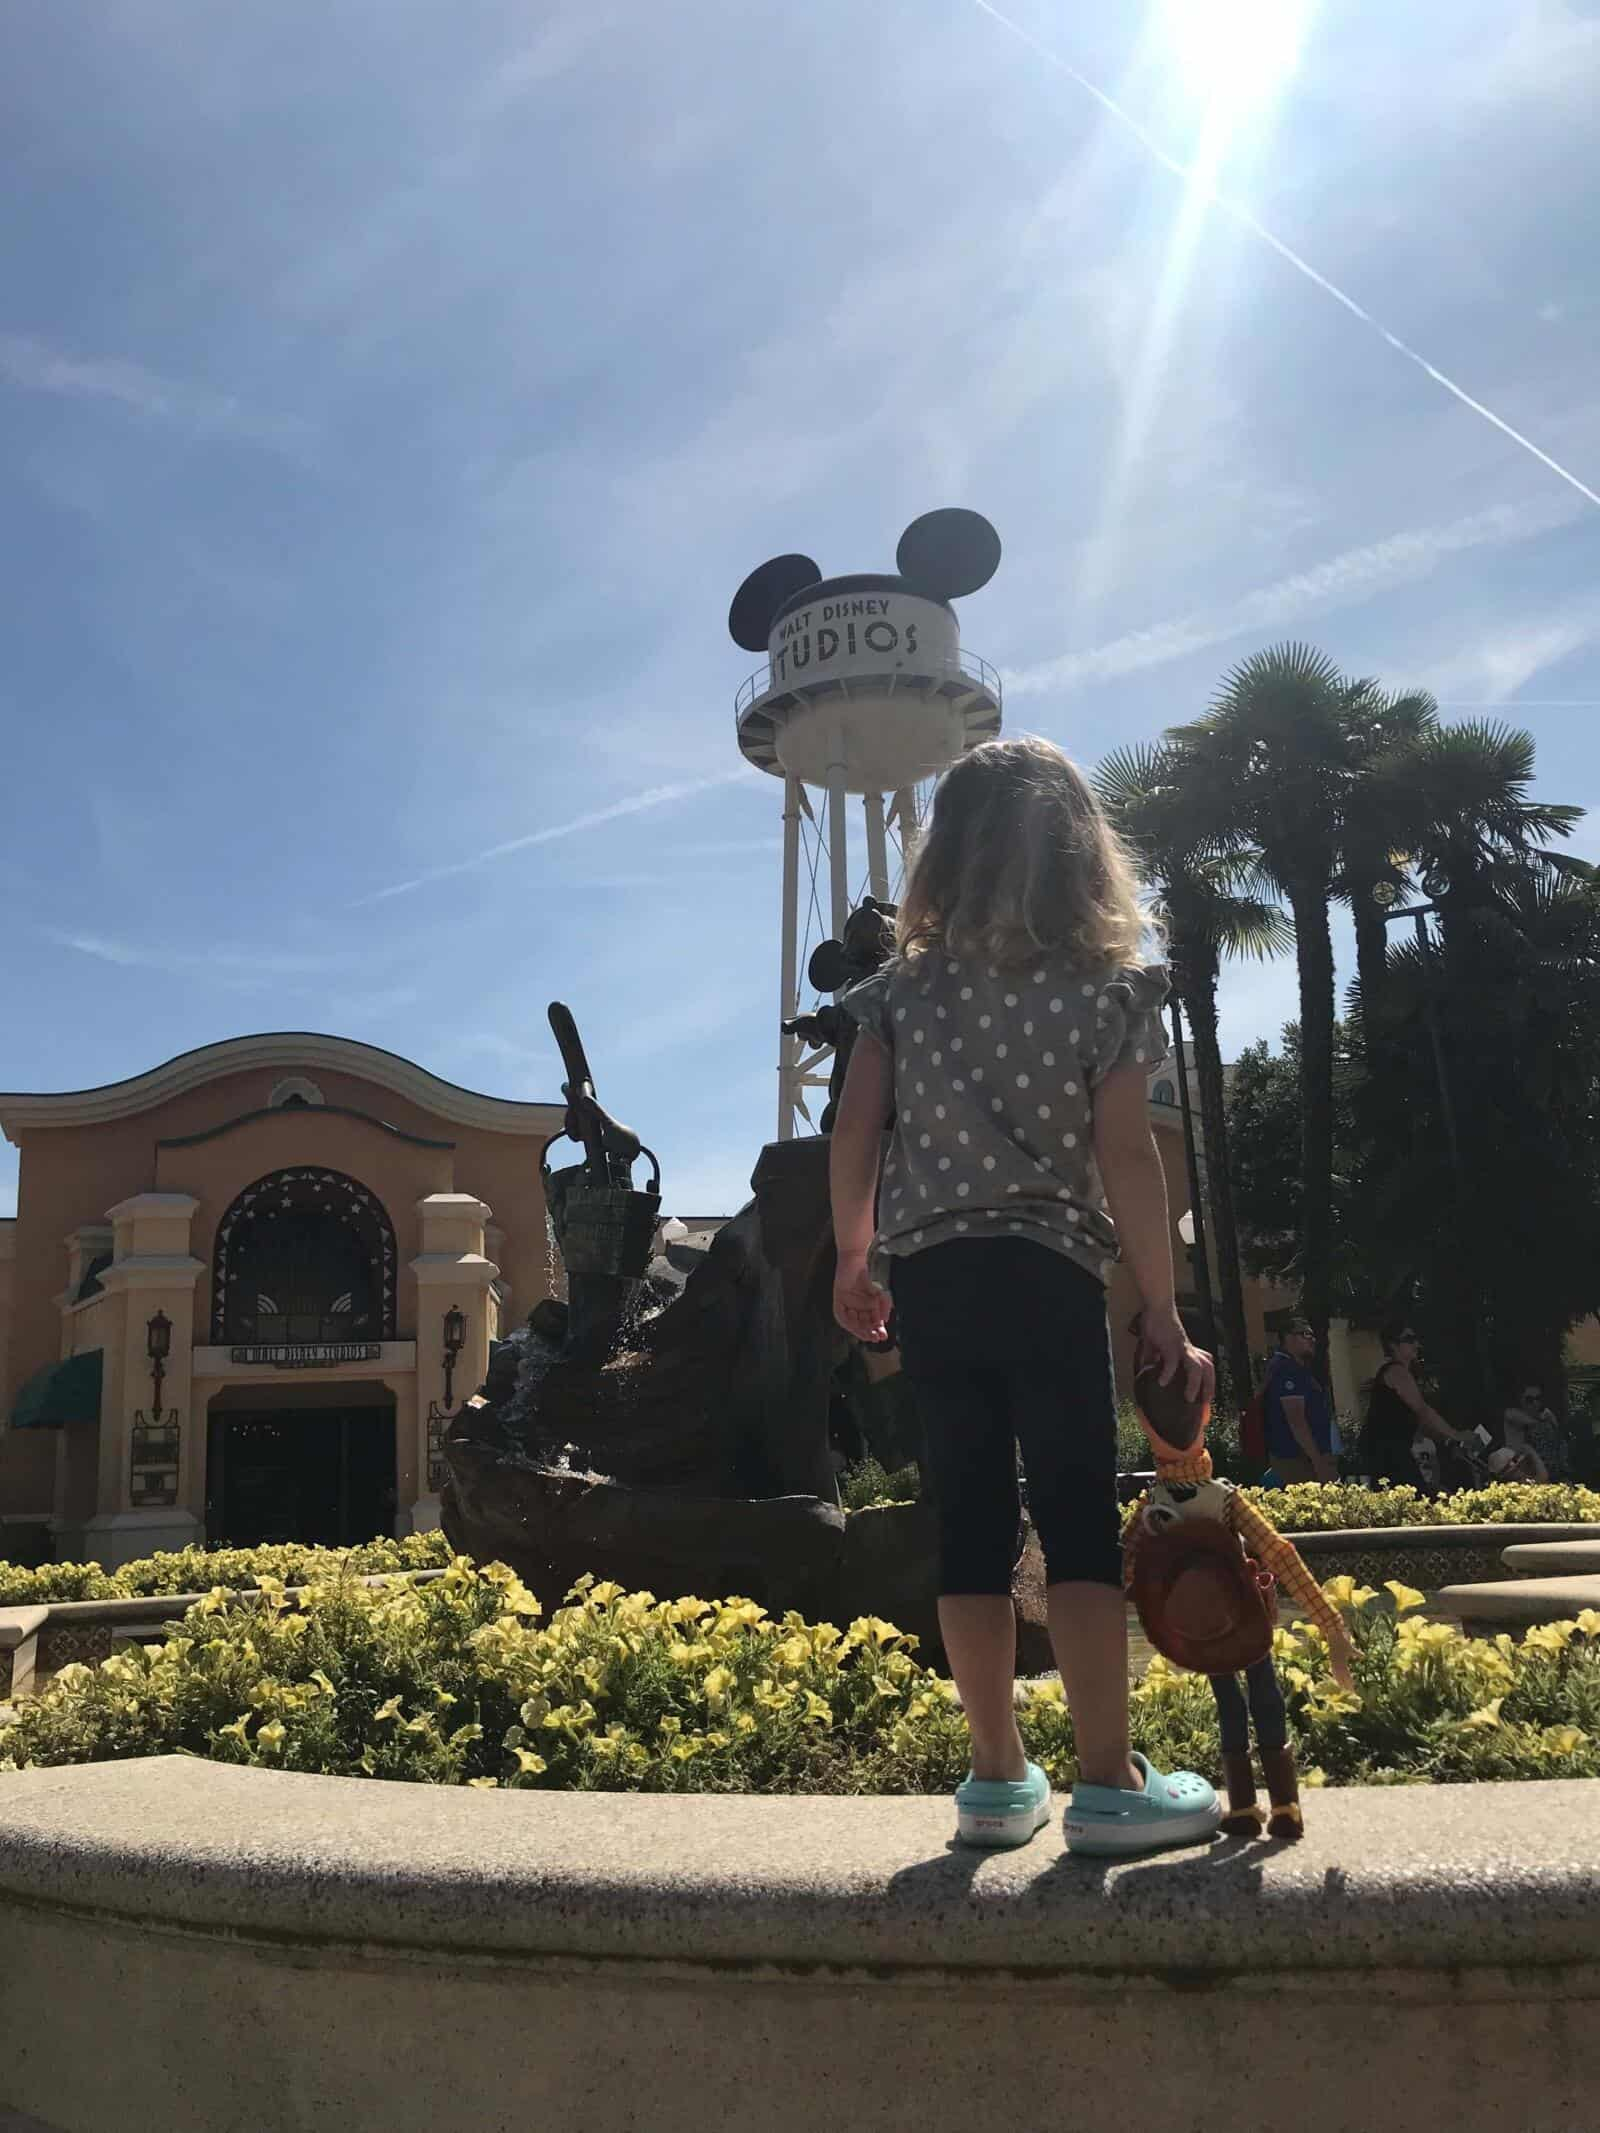 What is the best age to go to Disneyland Paris?